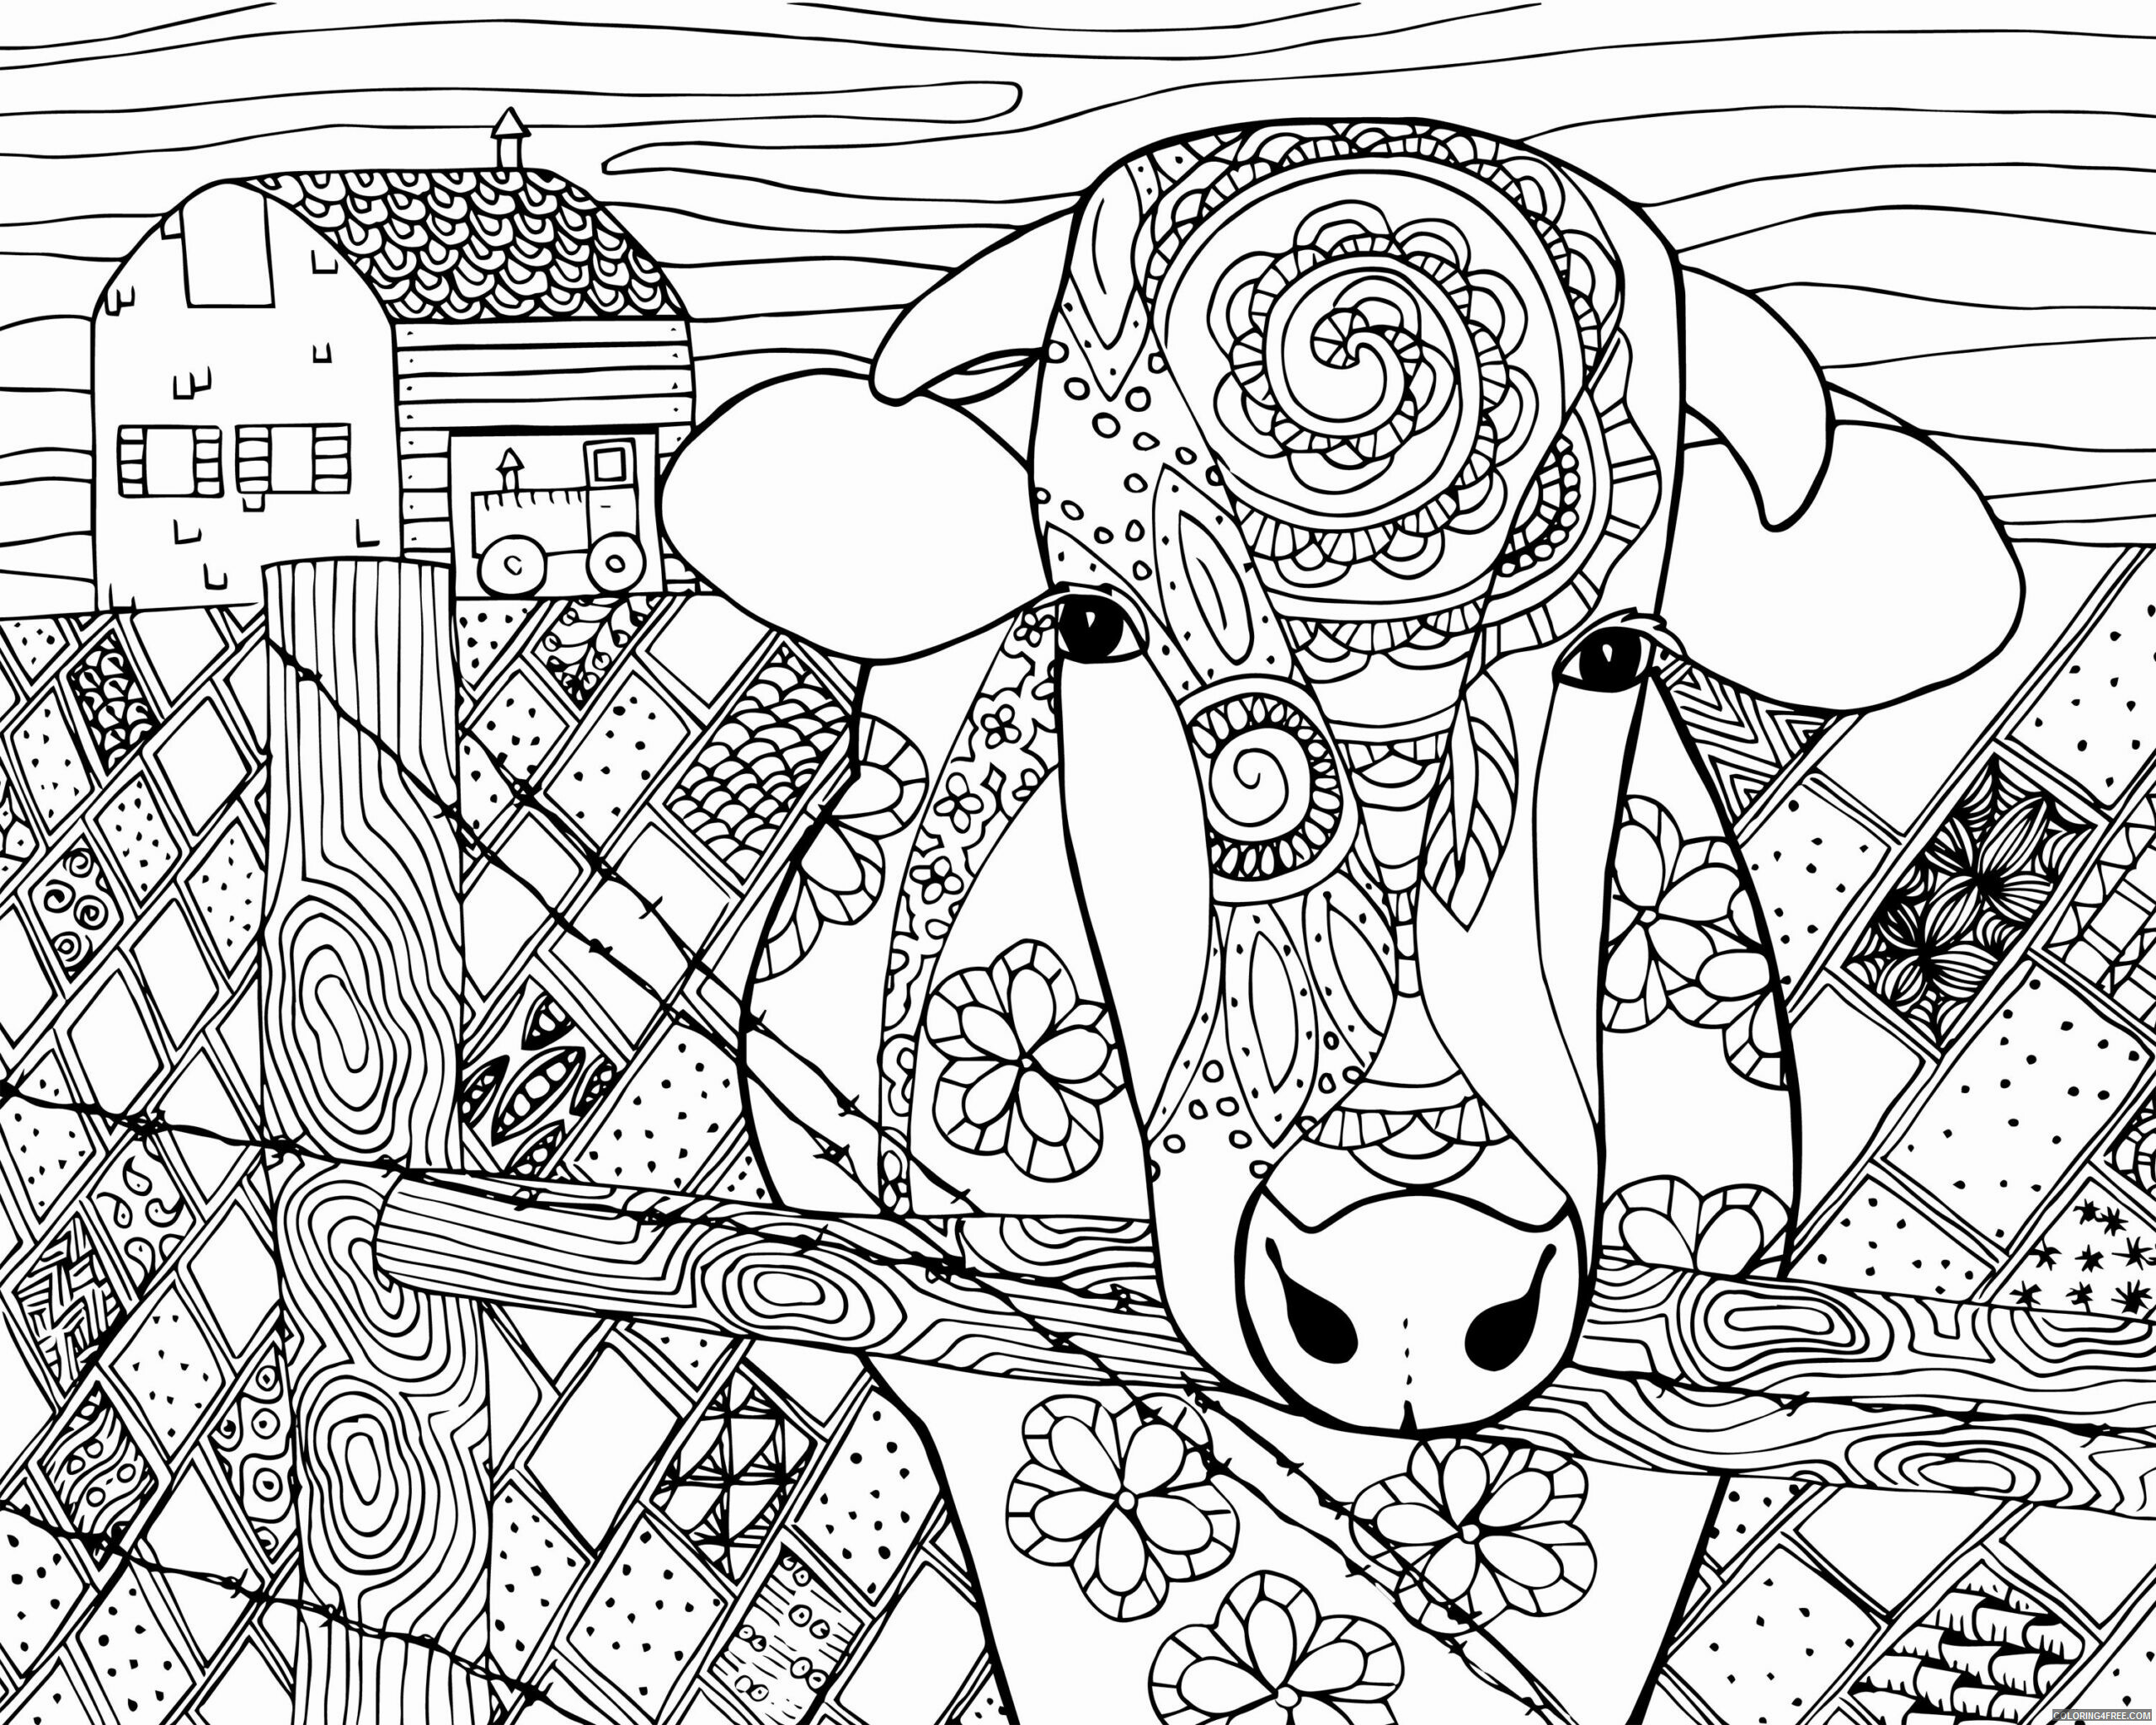 Adult Coloring Pages Farm Cow Easy for Adults Printable 2020 026 Coloring4free